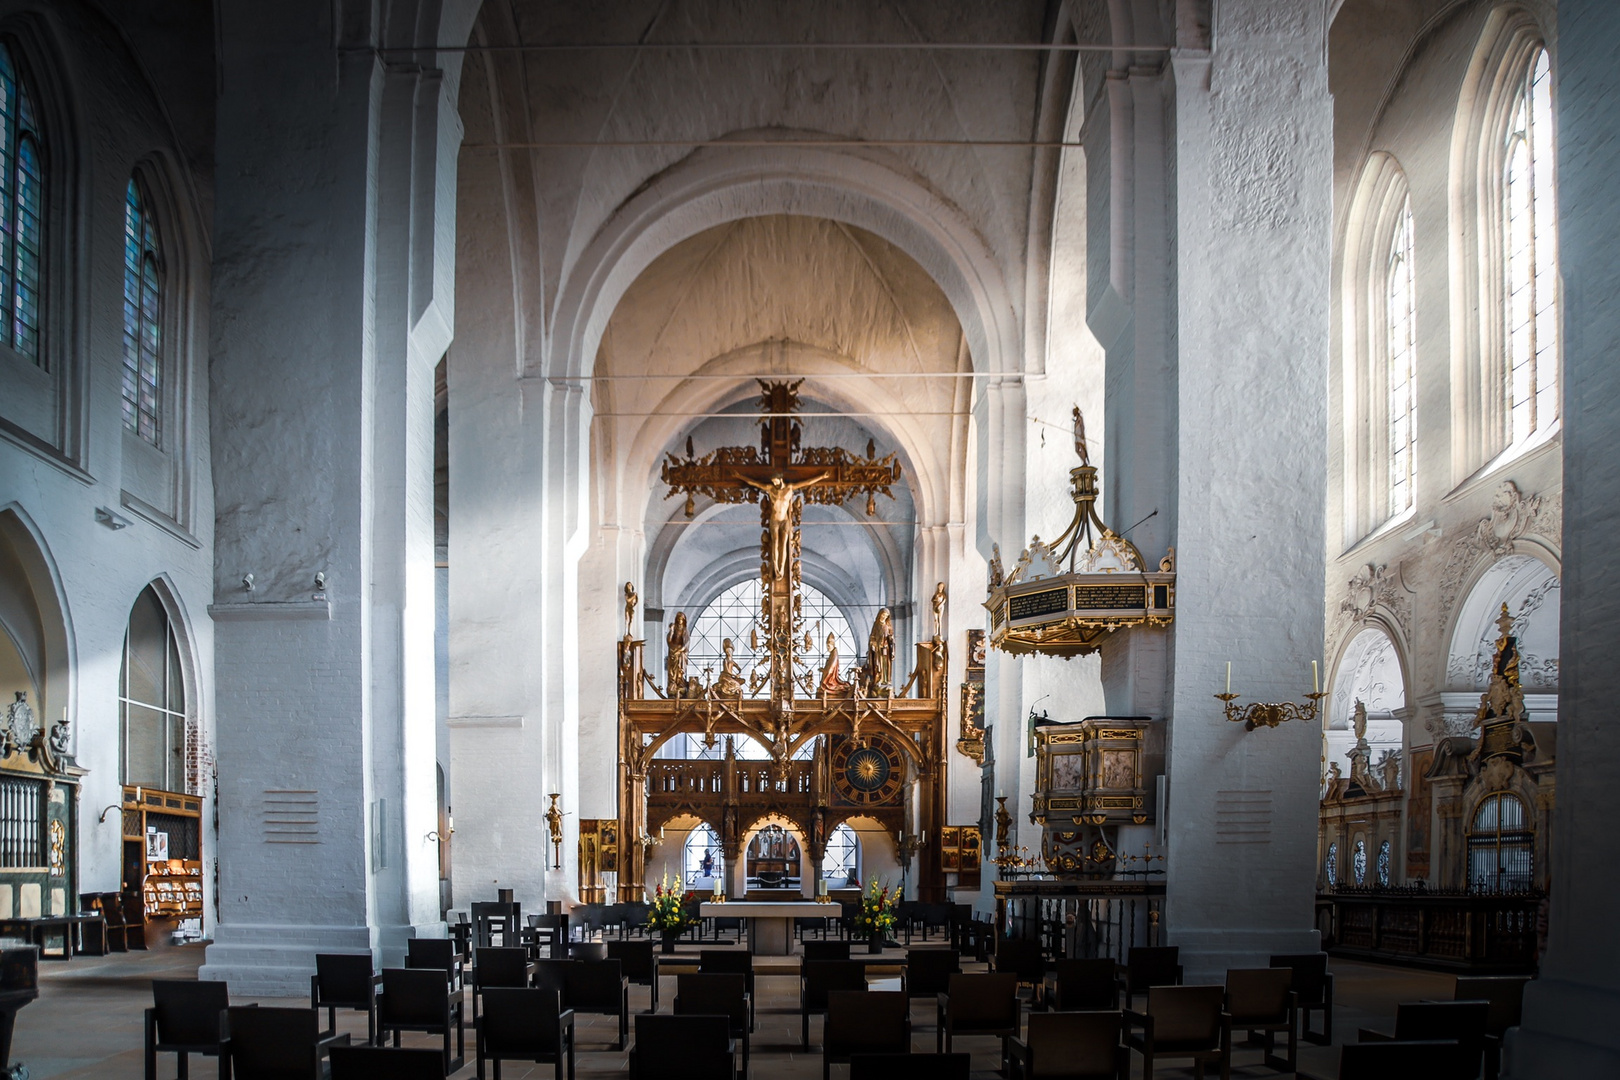 Dom in Lübeck